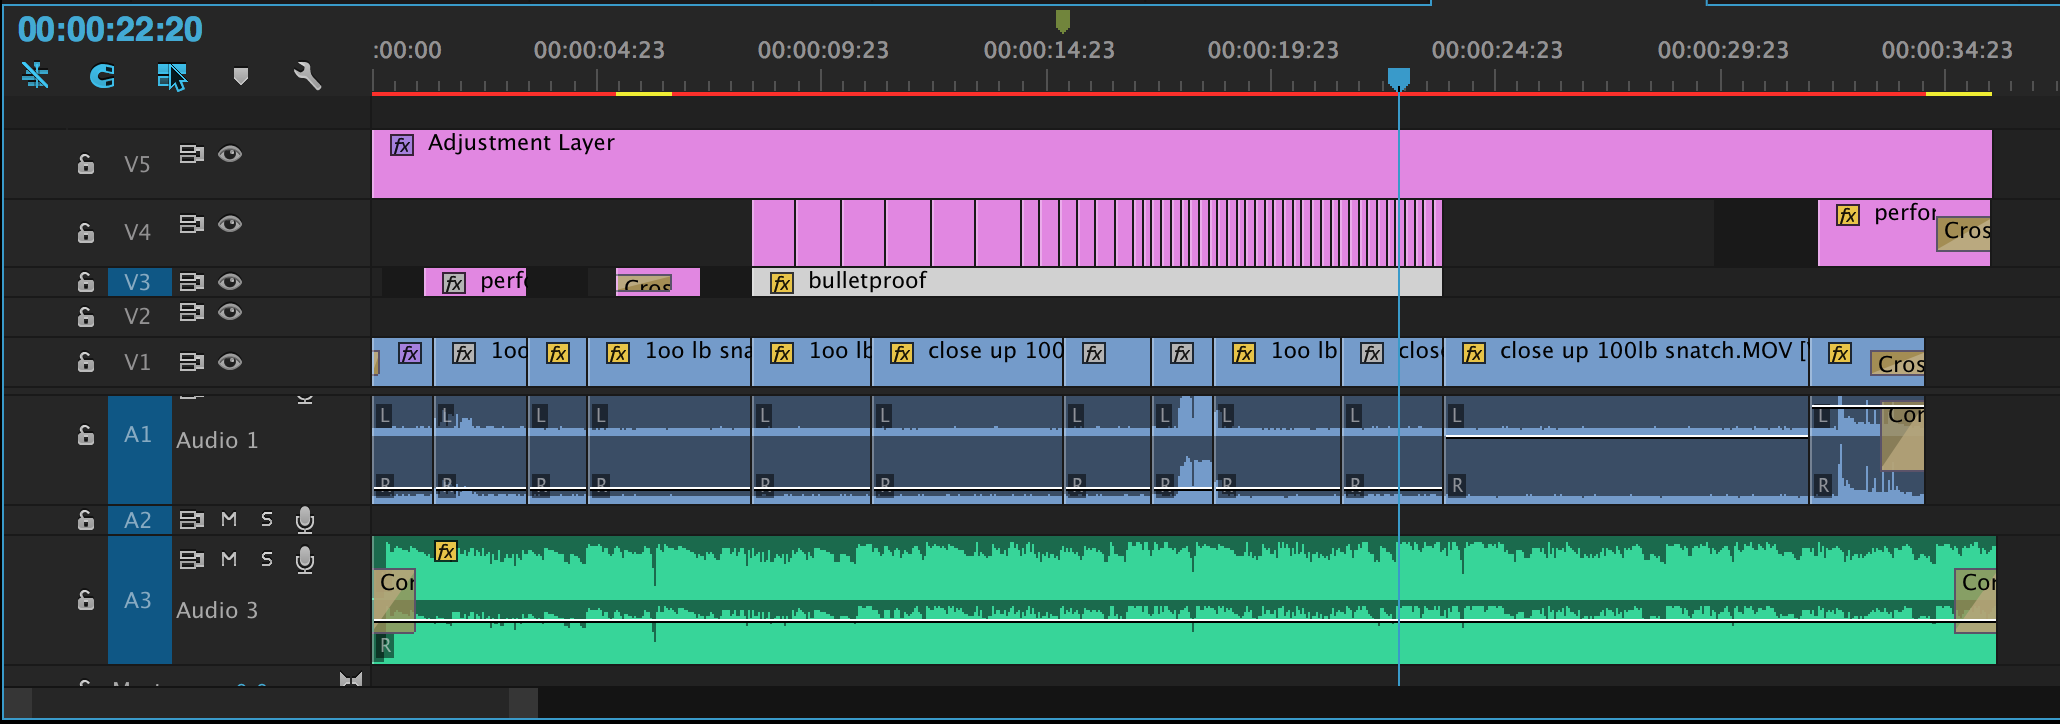 And for the nerds, a quick look at the timeline for that edit.